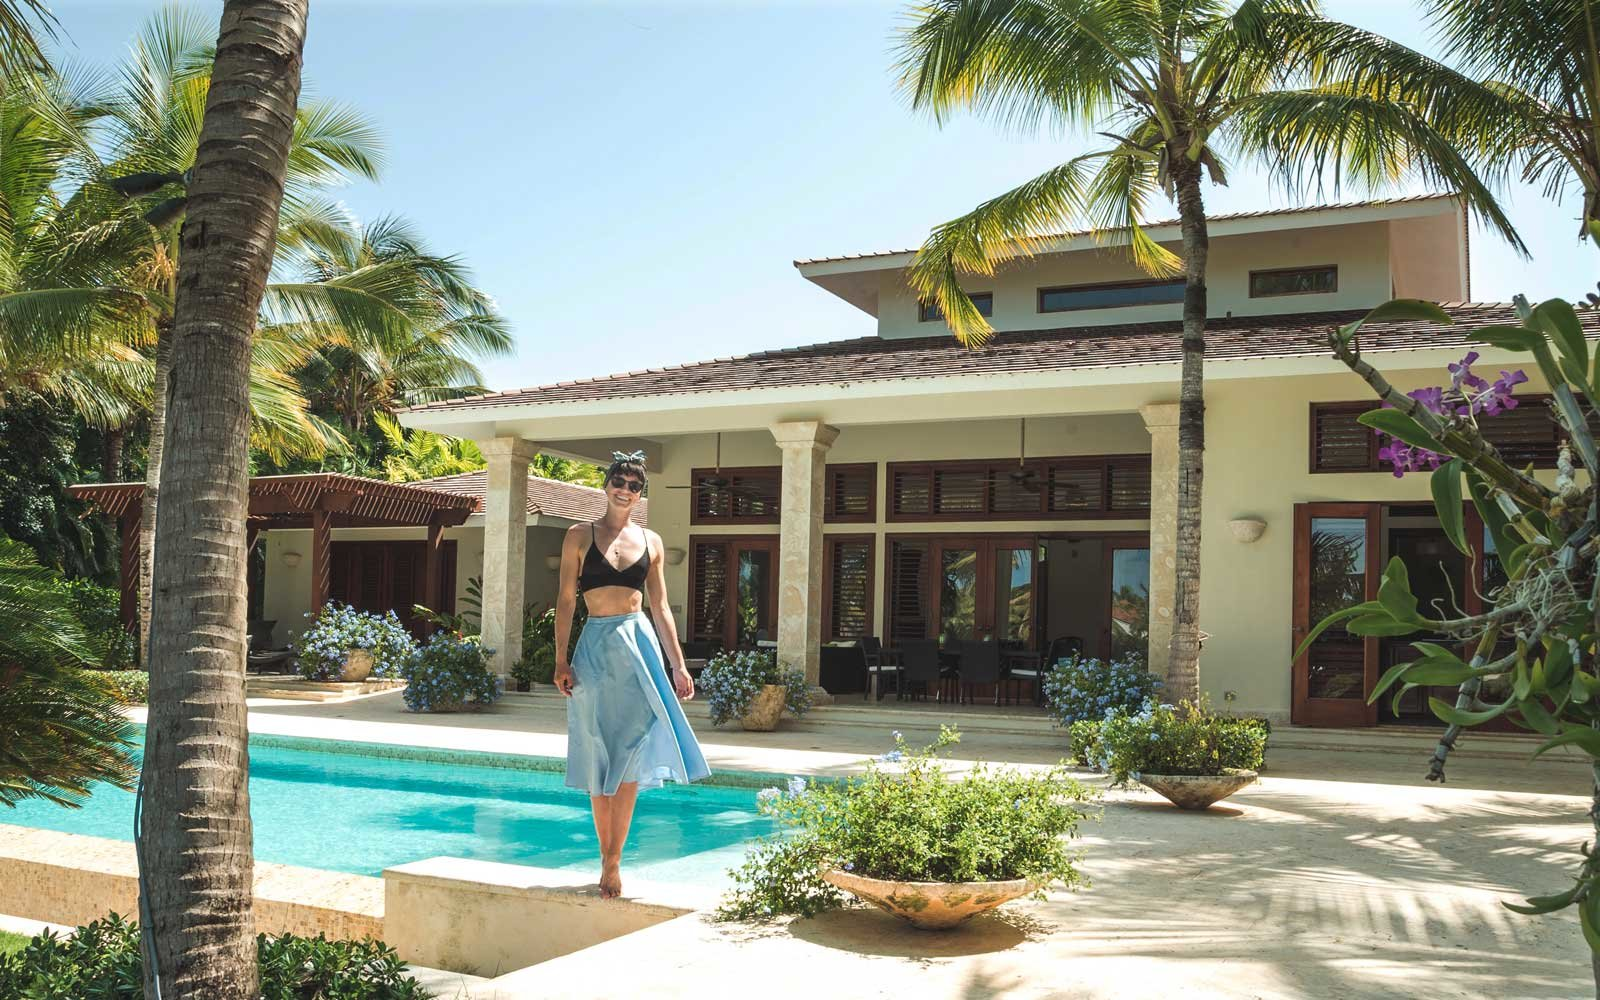 Sorelle Amore's Job Staying in Luxury Homes